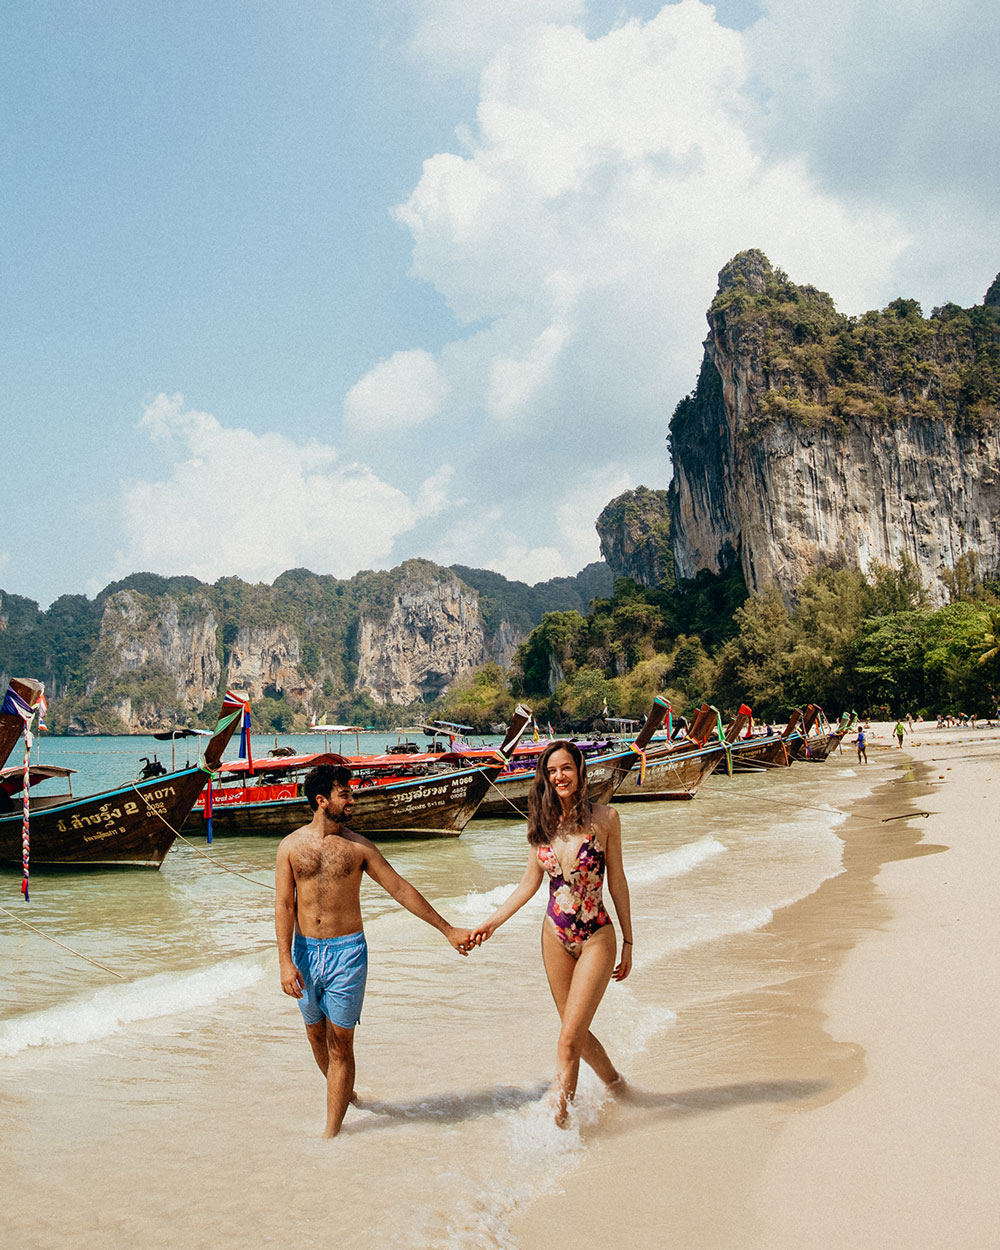 railay-beach-krabi1-thailand